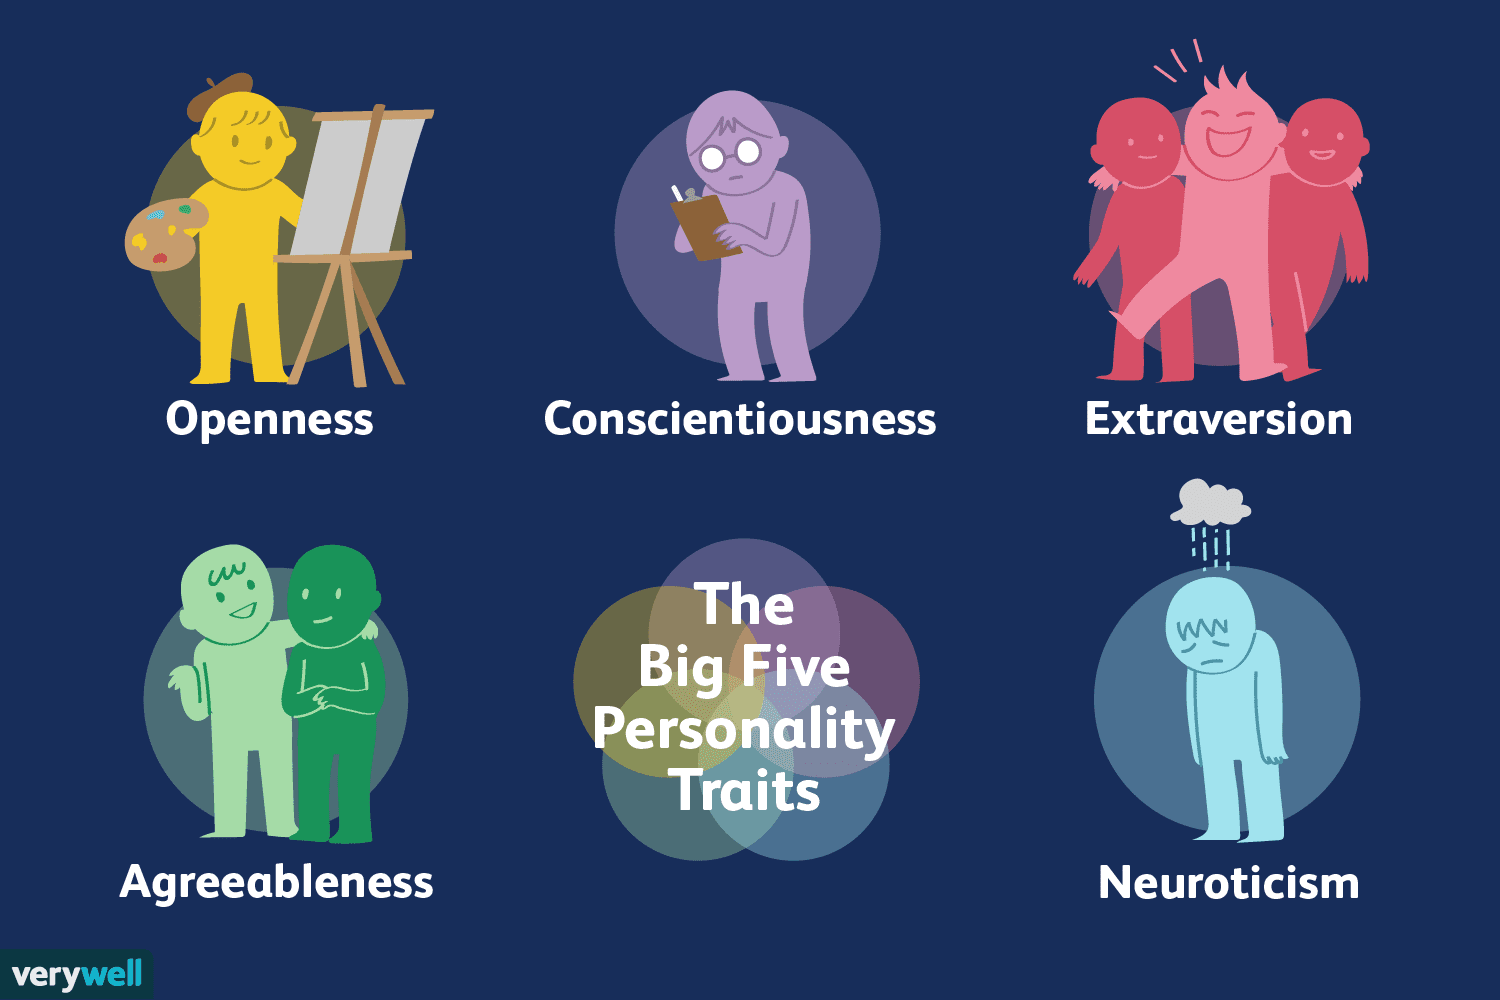 What Are The Big Five Personality Traits